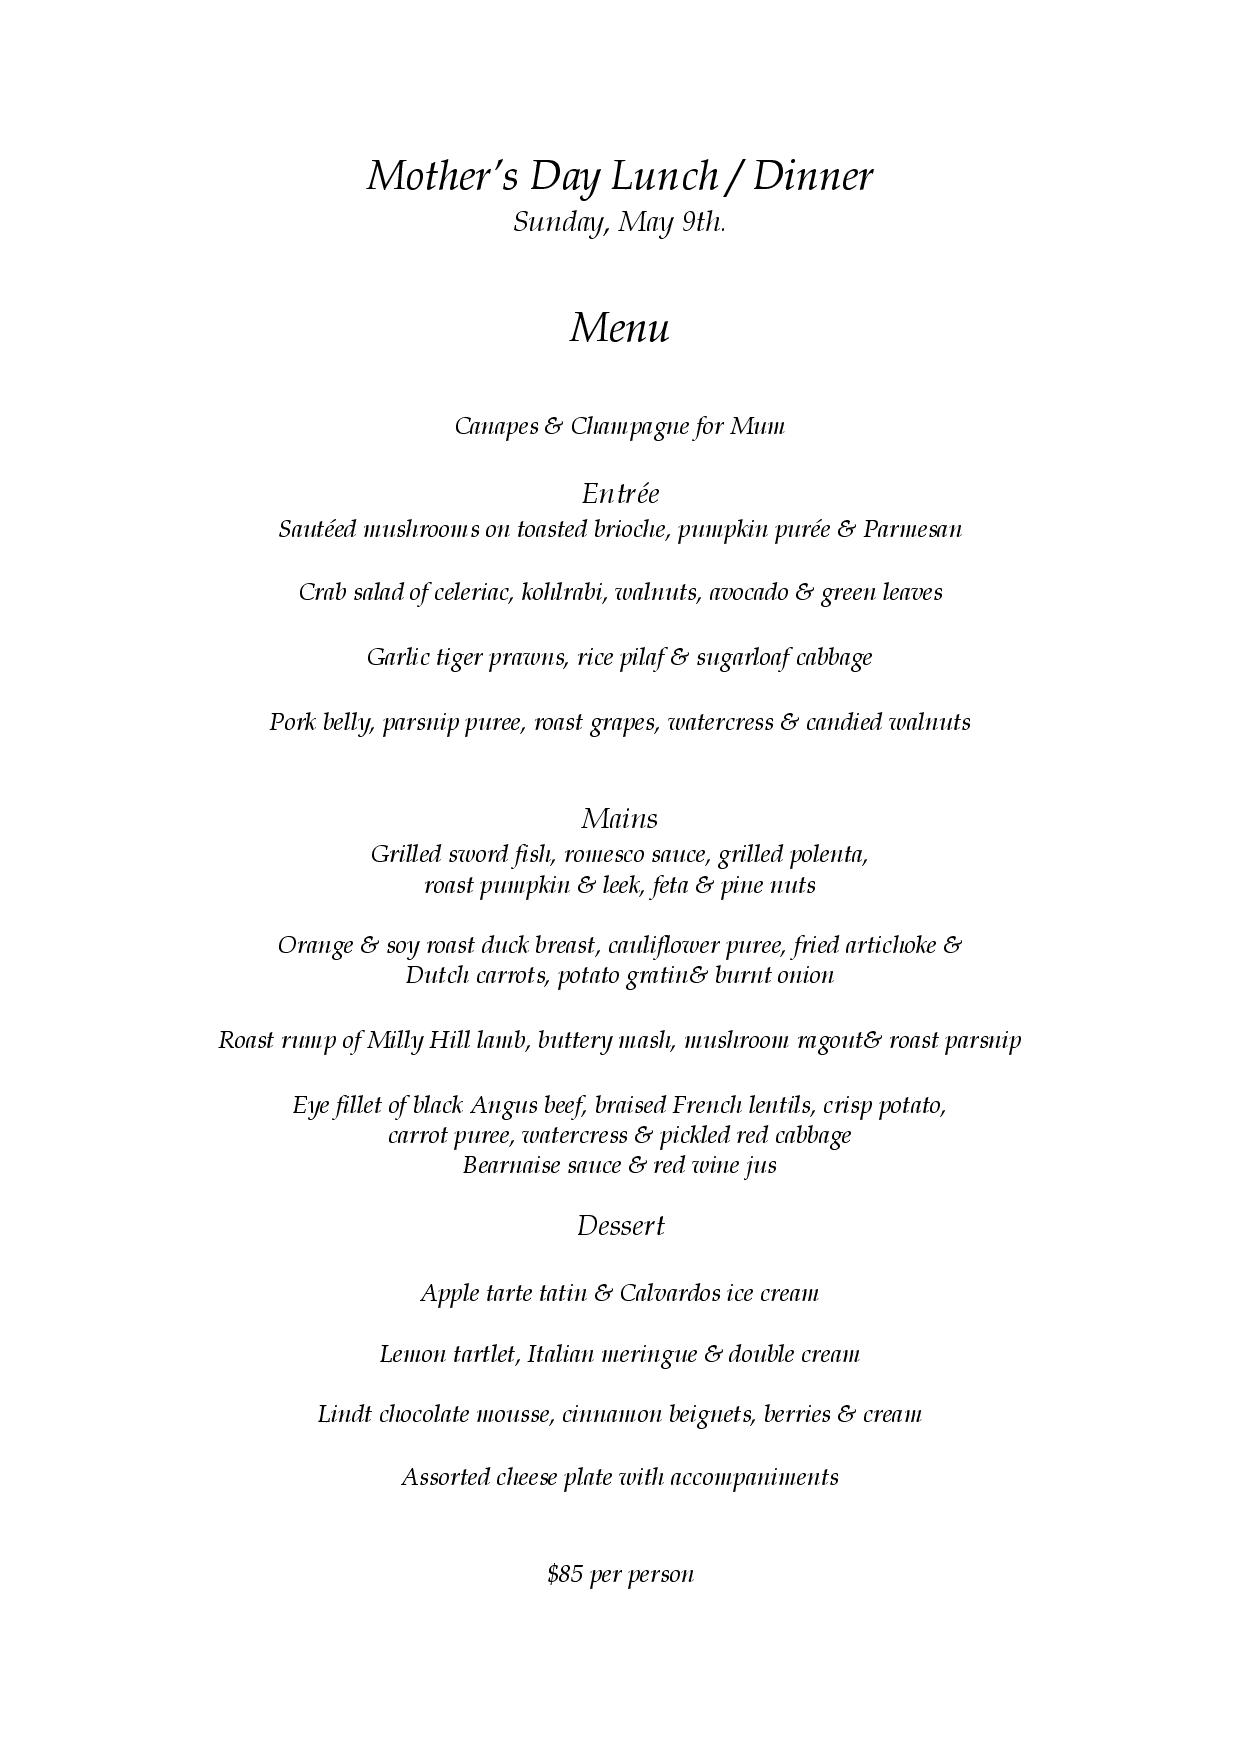 Mother's Day Lunch & Dinner menu